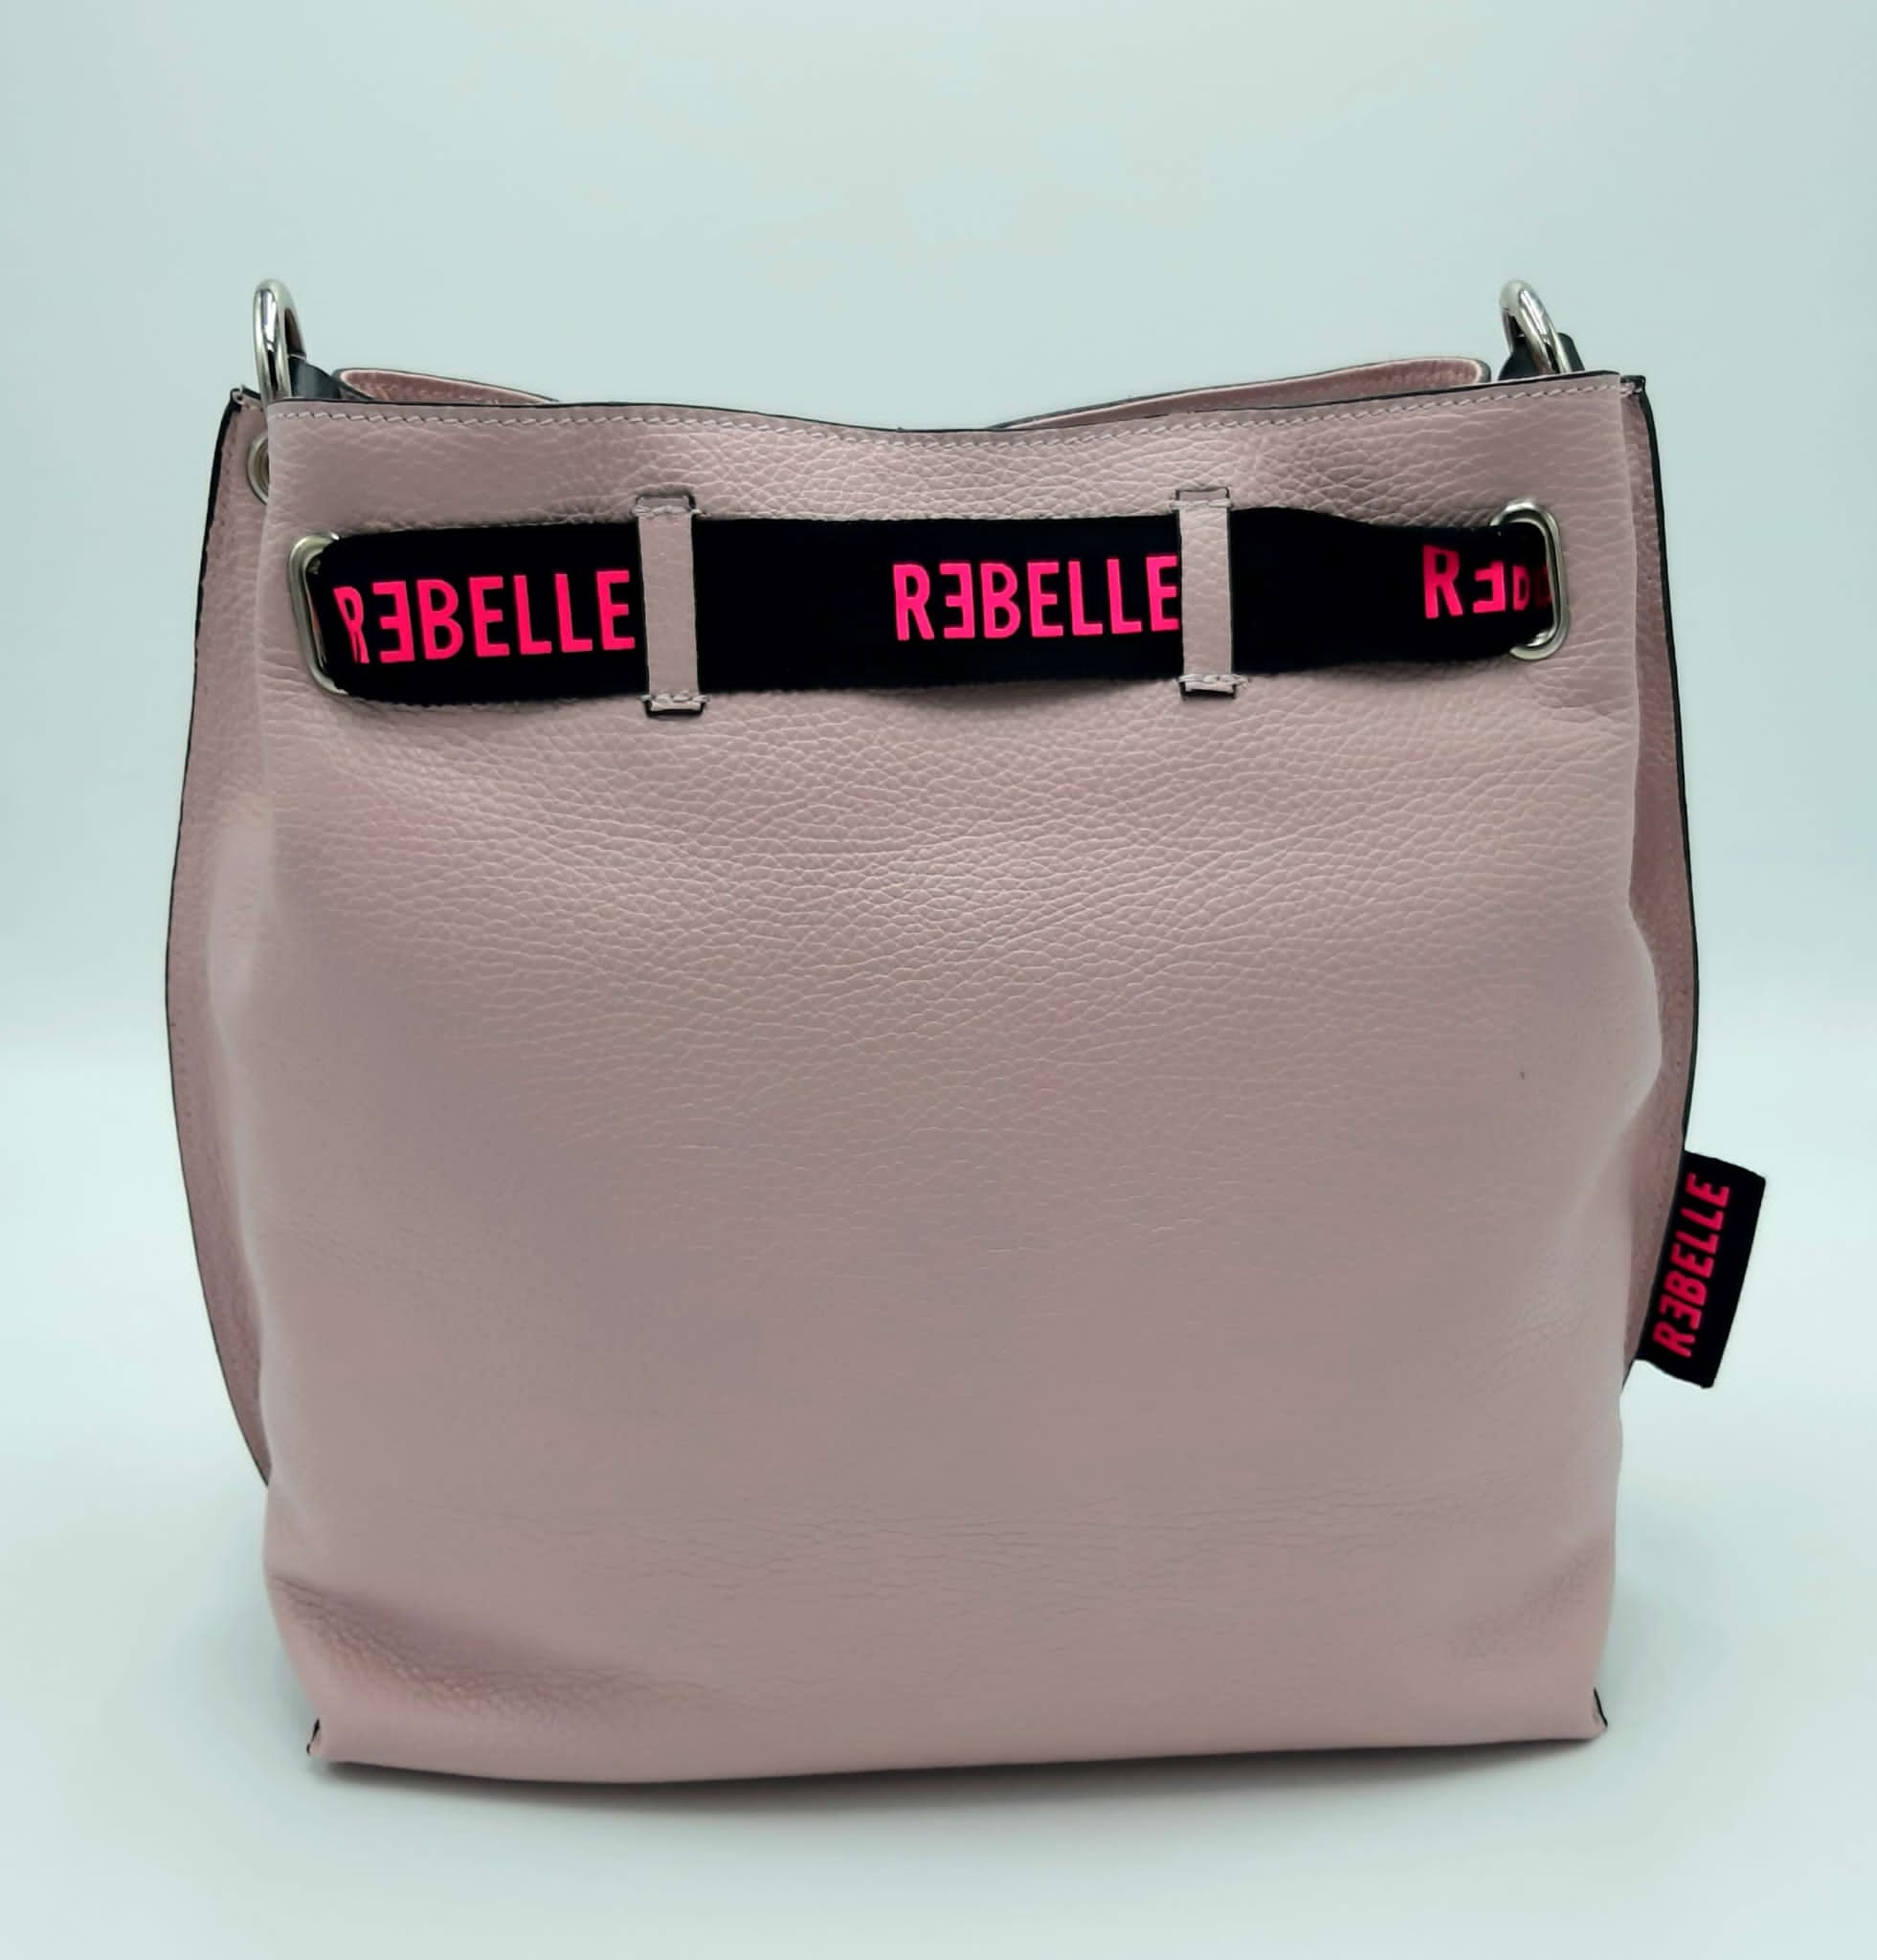 Secchiello in pelle bottalata rosa REBELLE